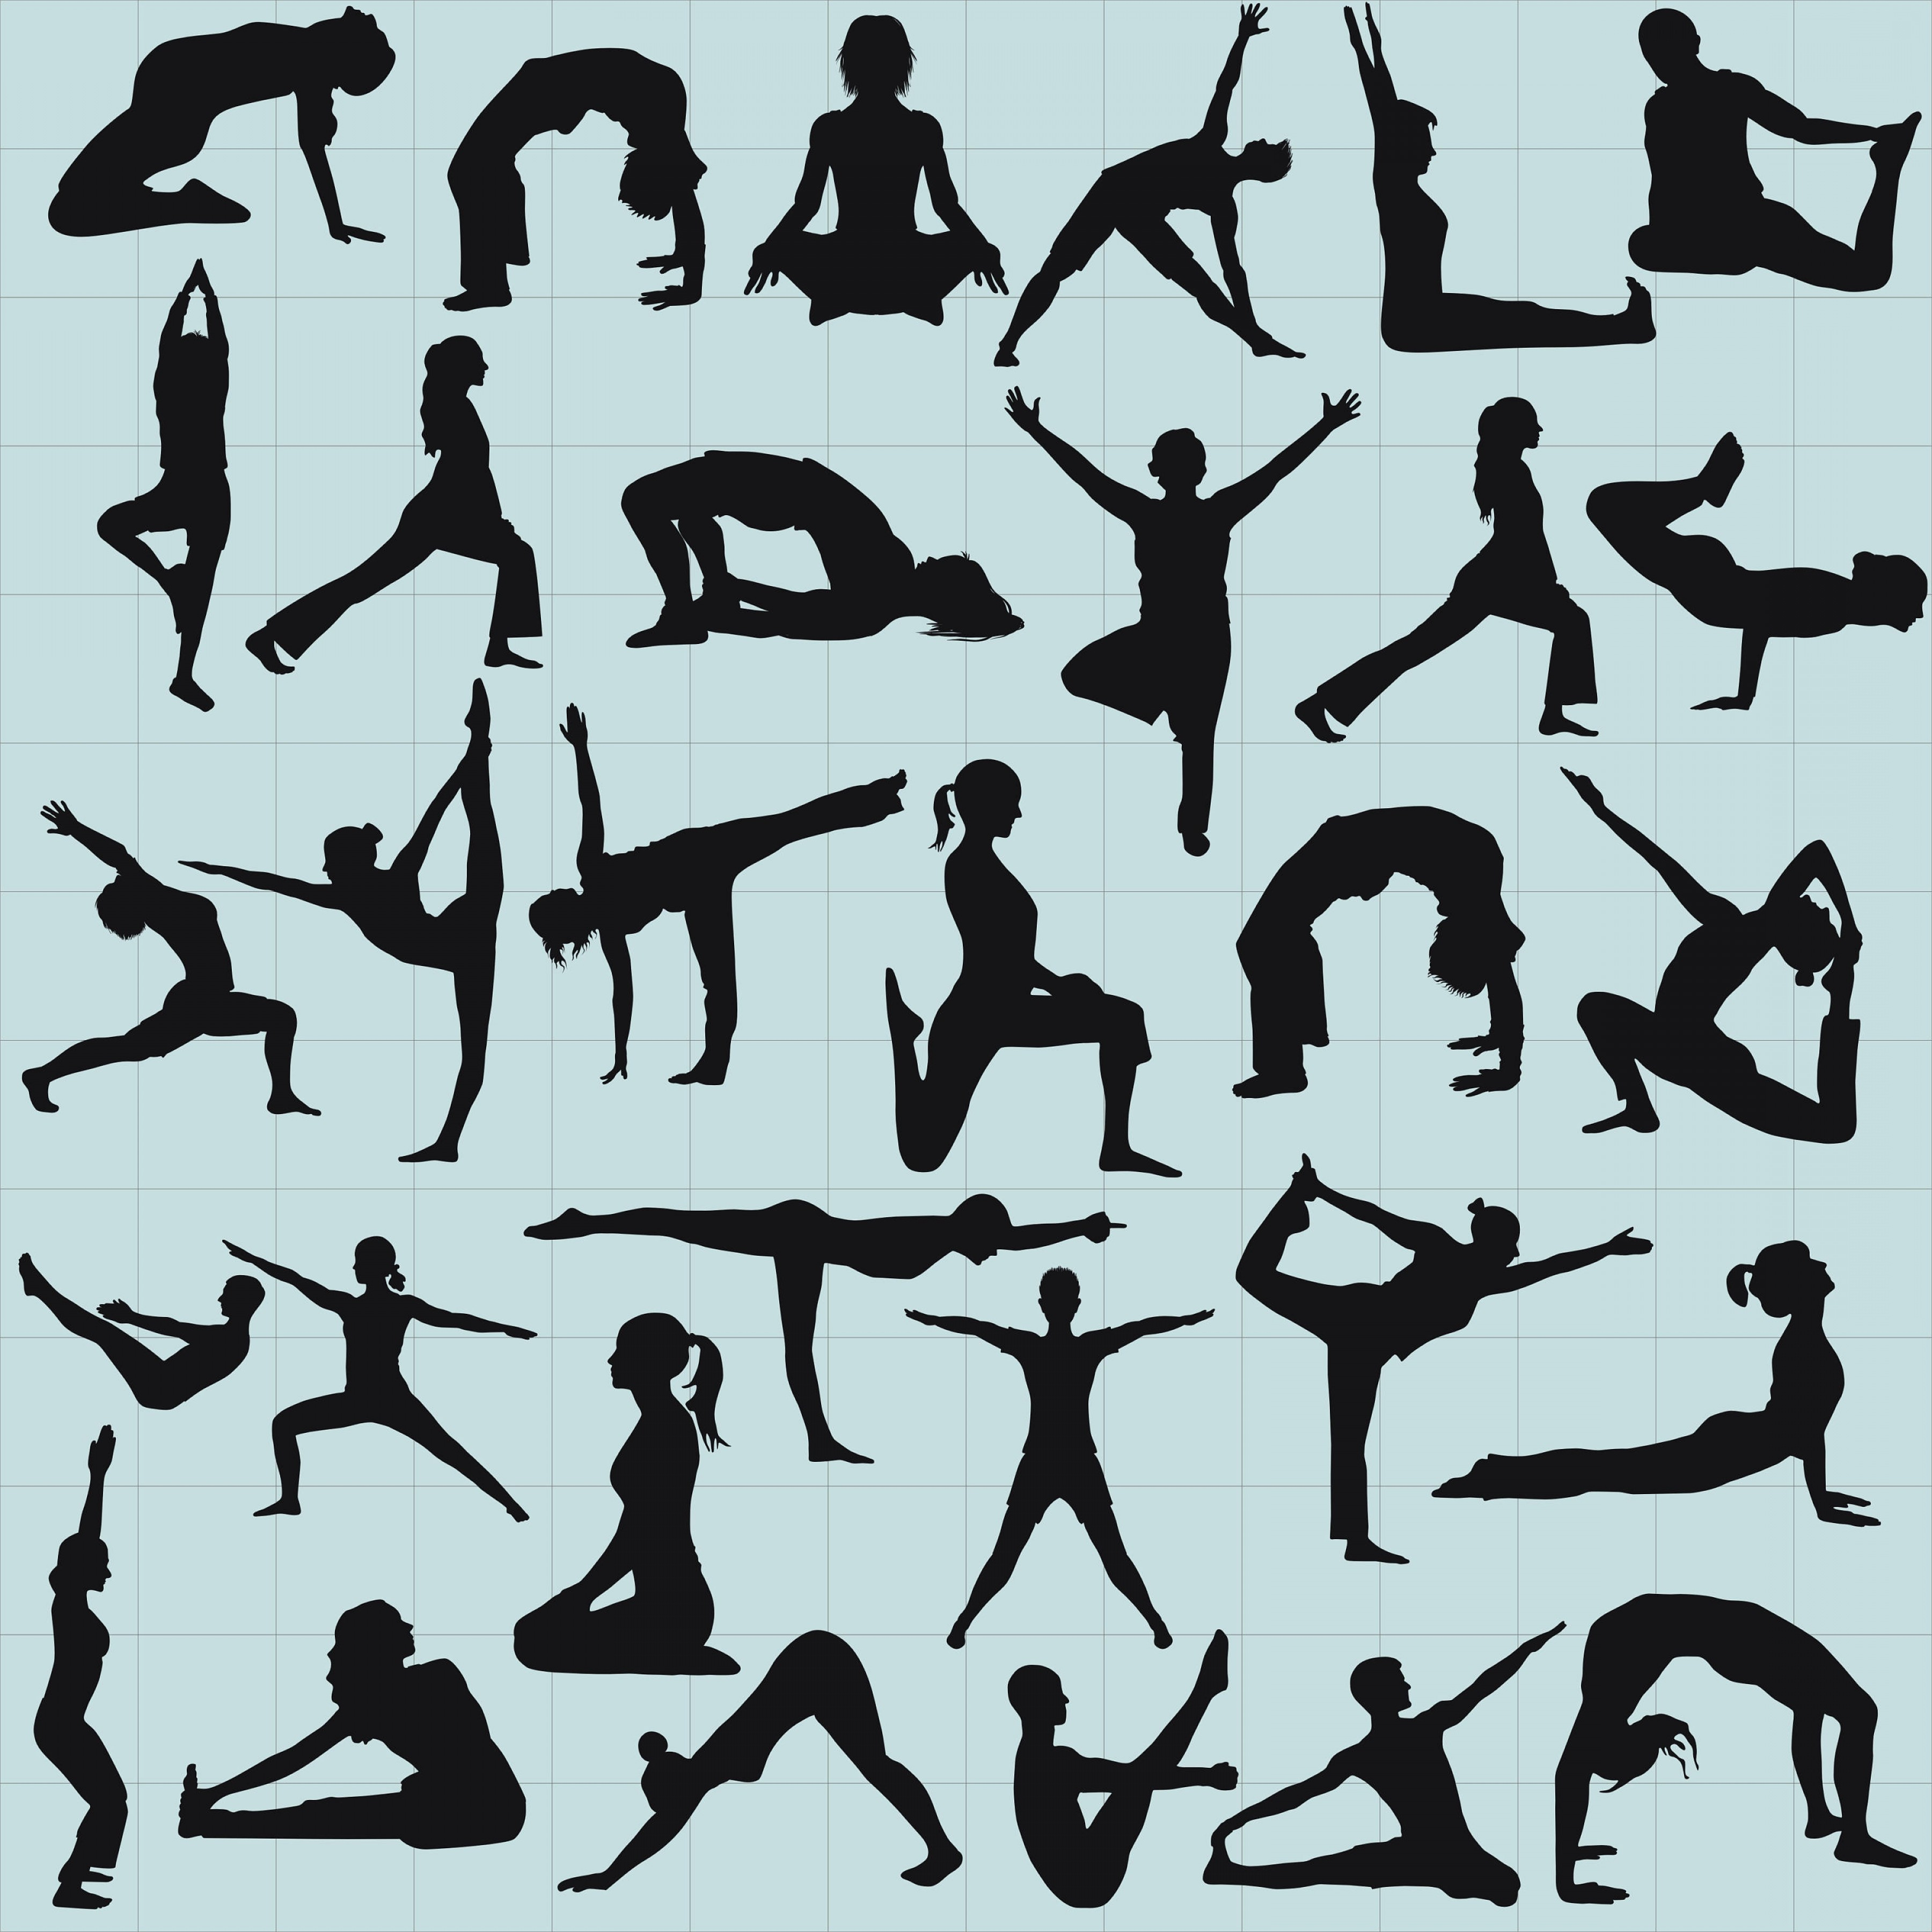 Yoga Vector Silhouette SVG: Yoga Clipart Yoga Poses Silhouette Yoga